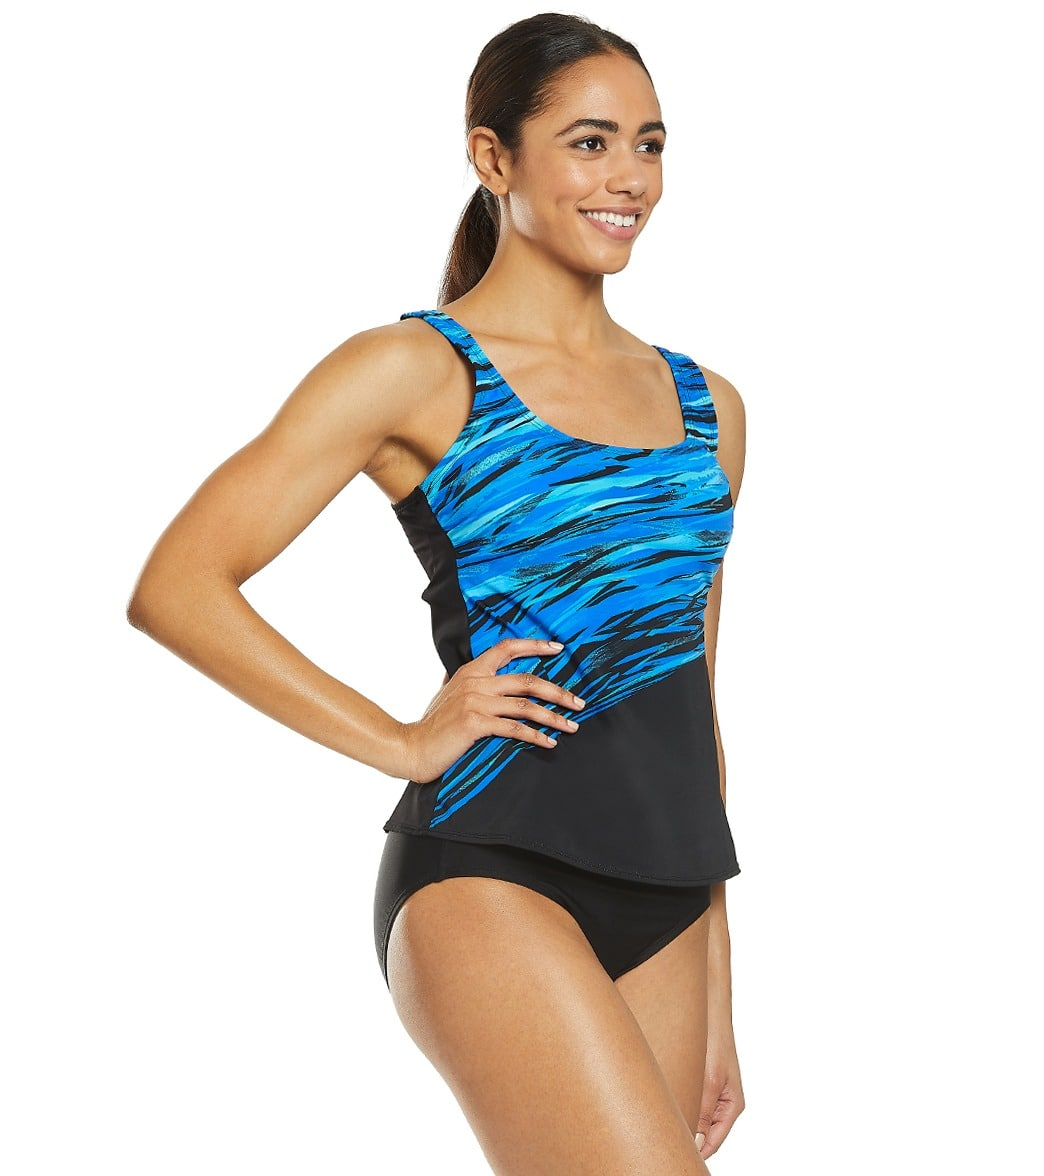 d984f502f4a09 Reebok Women's Northern Light Show Chlorine Resistant Tankini Top at ...